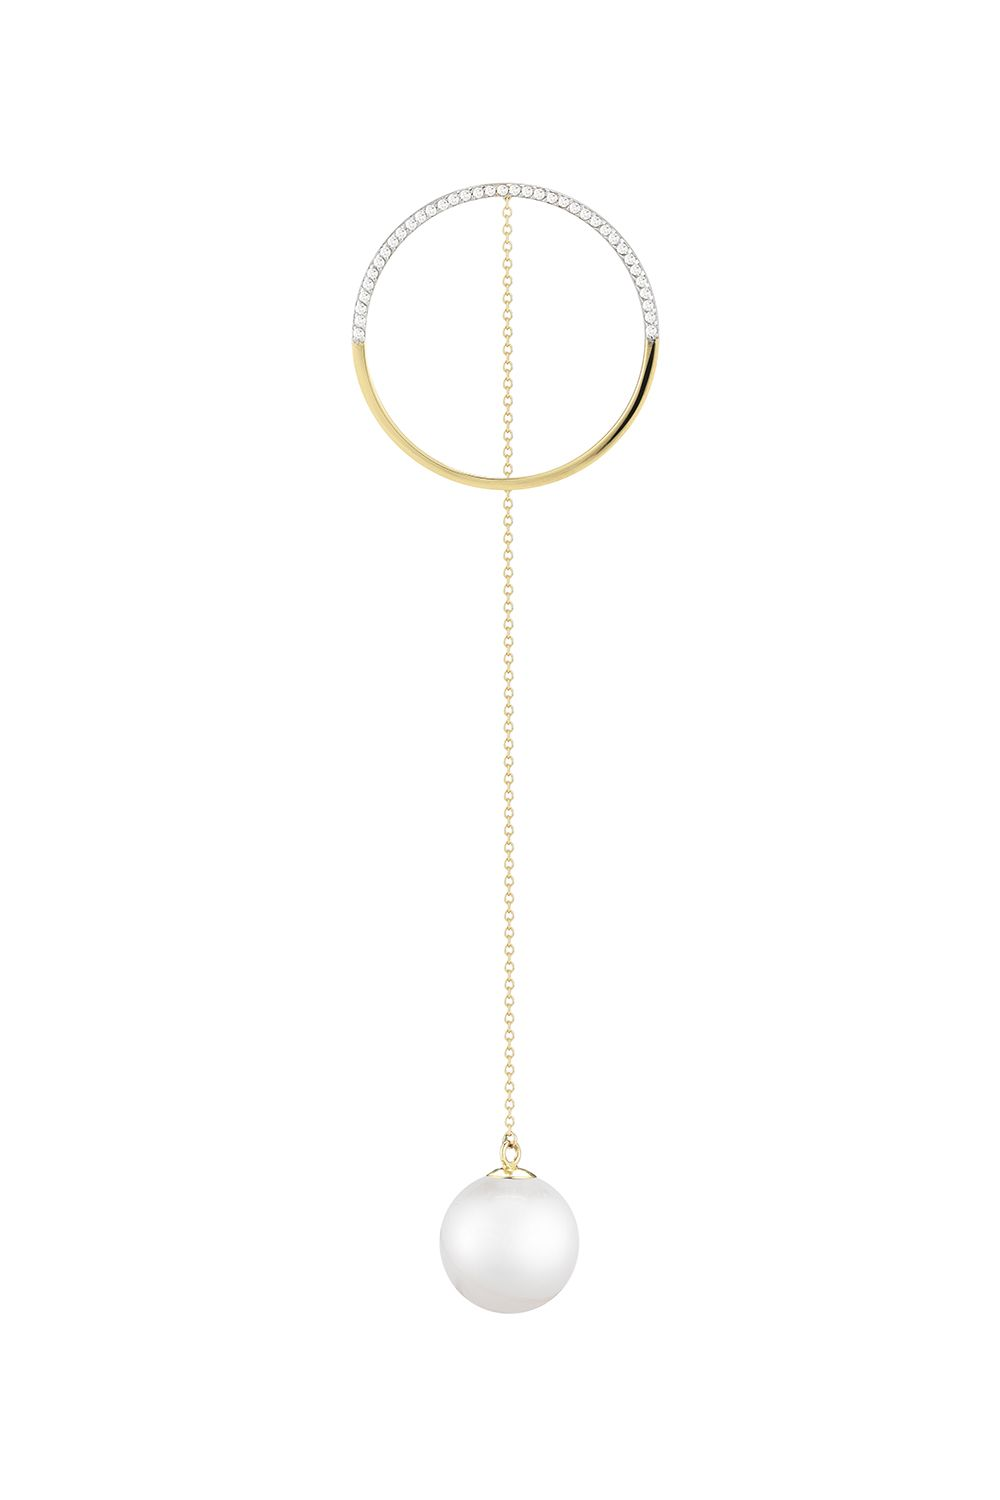 "<p><strong data-redactor-tag=""strong""></strong>A pendulum pearl adds&nbsp&#x3B;just the right amount of feminine edge to this sculptural dangler.<span data-redactor-class=""sqs-money-native"" data-redactor-tag=""span"" class=""sqs-money-native"" data-verified=""redactor""></span></p><p><span data-redactor-class=""sqs-money-native"" data-redactor-tag=""span"" class=""sqs-money-native"" data-verified=""redactor"">$560,&nbsp&#x3B;</span><a href=""http://efcollection.com"" target=""_blank"" data-saferedirecturl=""https://www.google.com/url?hl=en&amp&#x3B;q=http://efcollection.com&amp&#x3B;source=gmail&amp&#x3B;ust=1484077955590000&amp&#x3B;usg=AFQjCNFvgUEzlCIPmXyWU37hkCWjX0i_Mg"">mateonewyork.com<span data-redactor-class=""redactor-invisible-space"" data-redactor-tag=""span"" class=""redactor-invisible-space"" data-verified=""redactor""></span></a>.</p>"